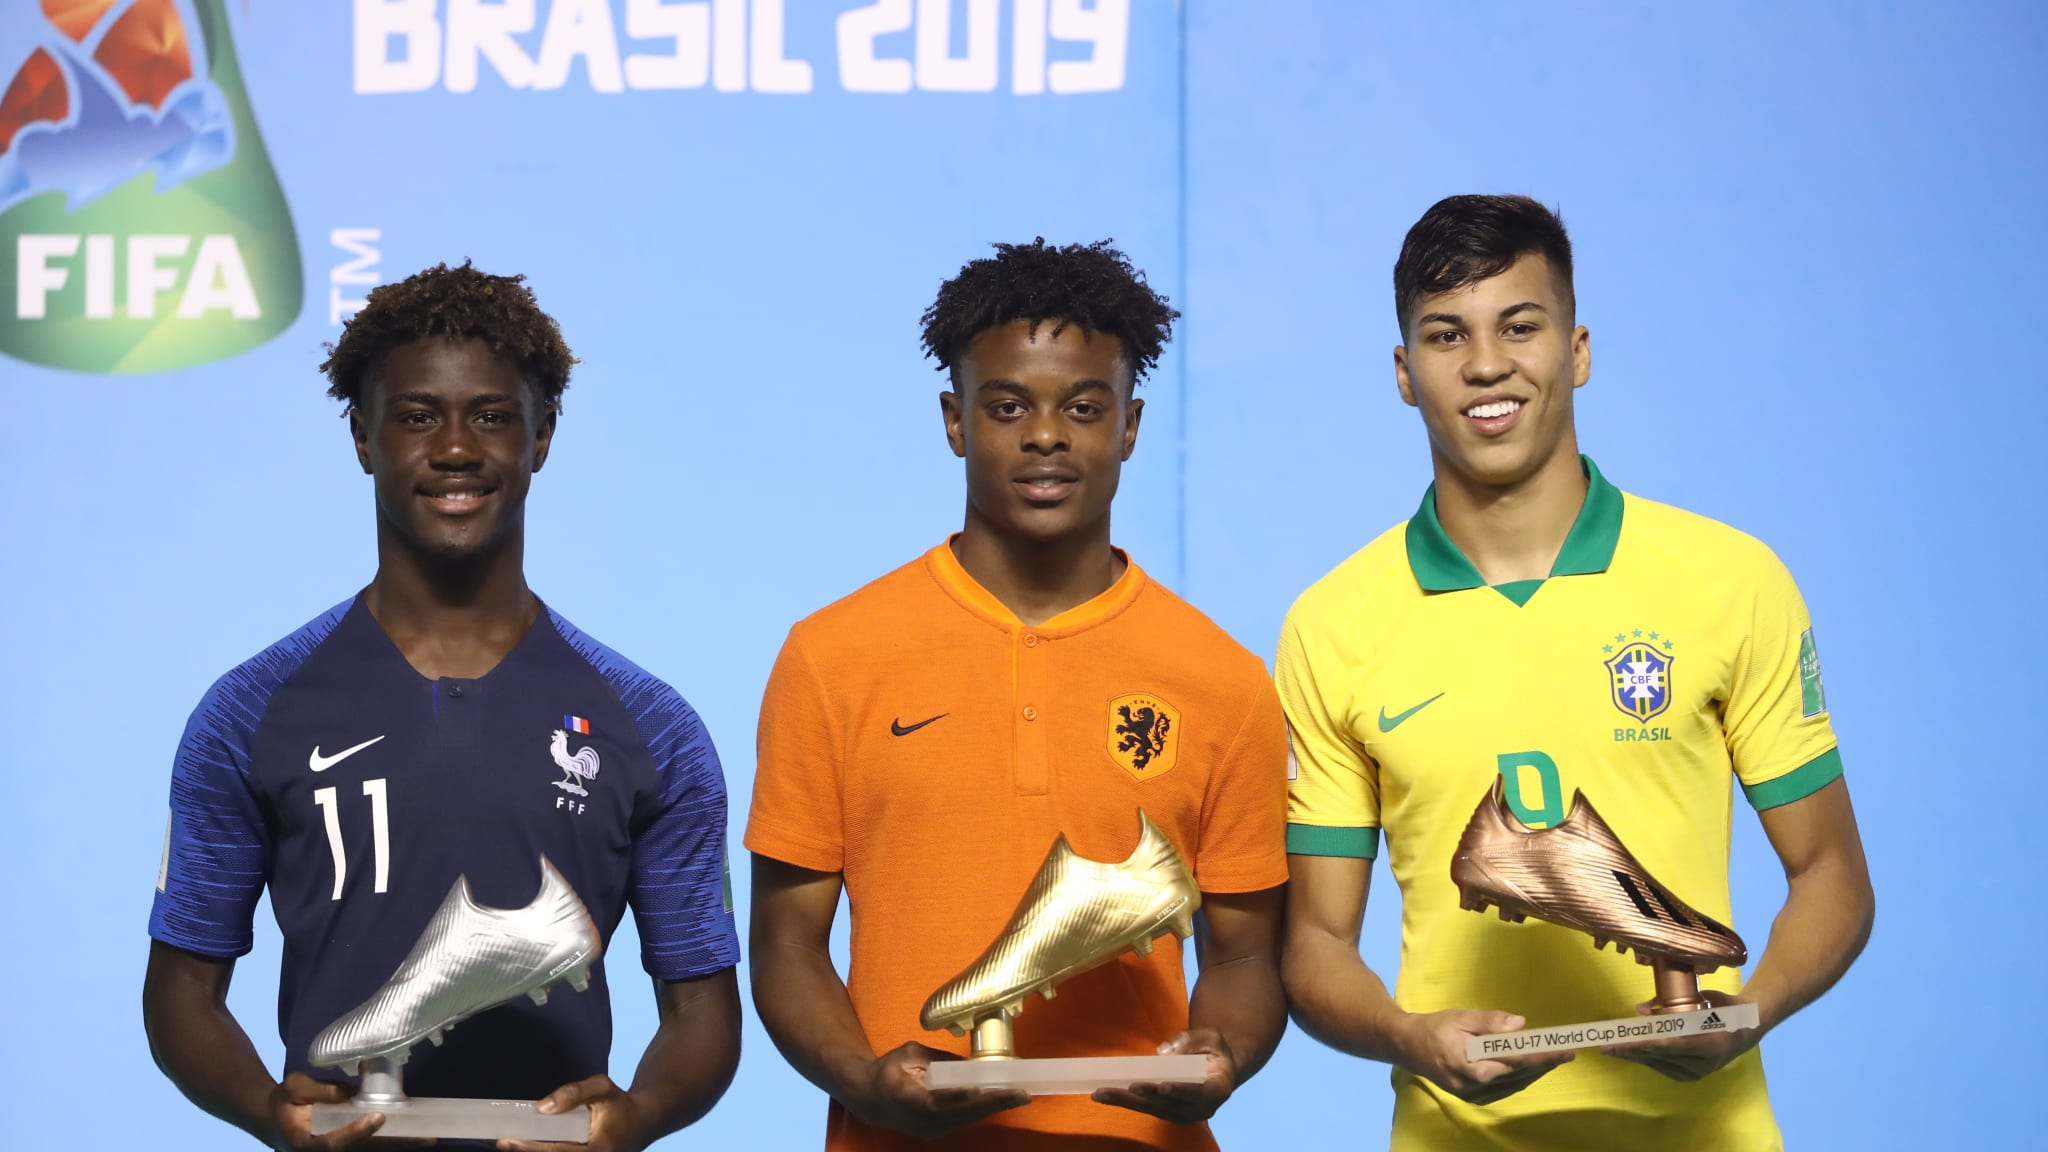 The winners of the Golden Boot award pose for a photo